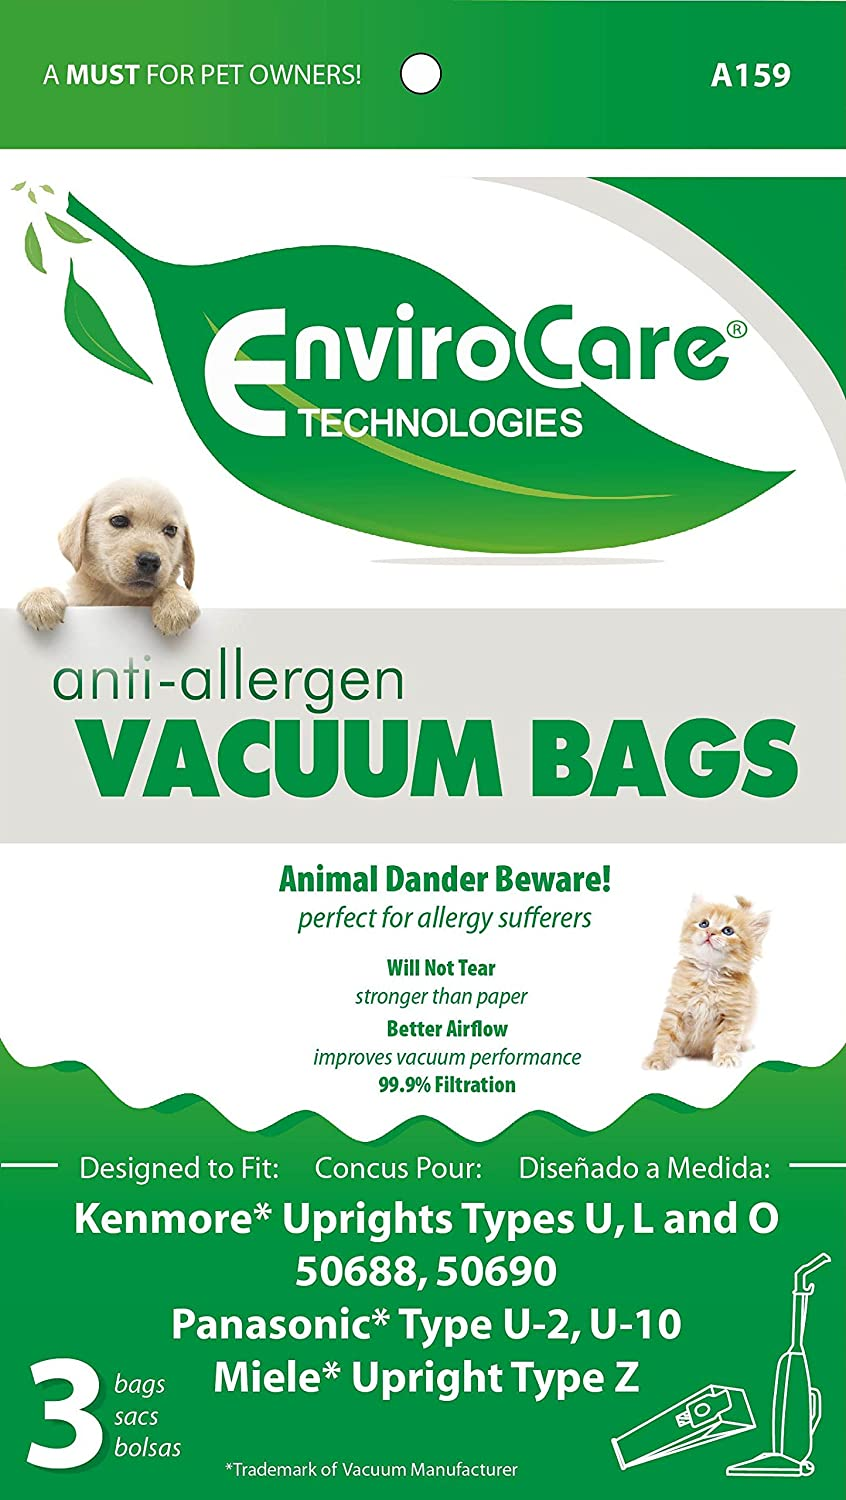 L Panasonic Type U-2 EnviroCare Replacement Anti-Allergen Vacuum Bags for Kenmore 50688 and 50690 Type U and O U-10 Uprights 3 Pack A159